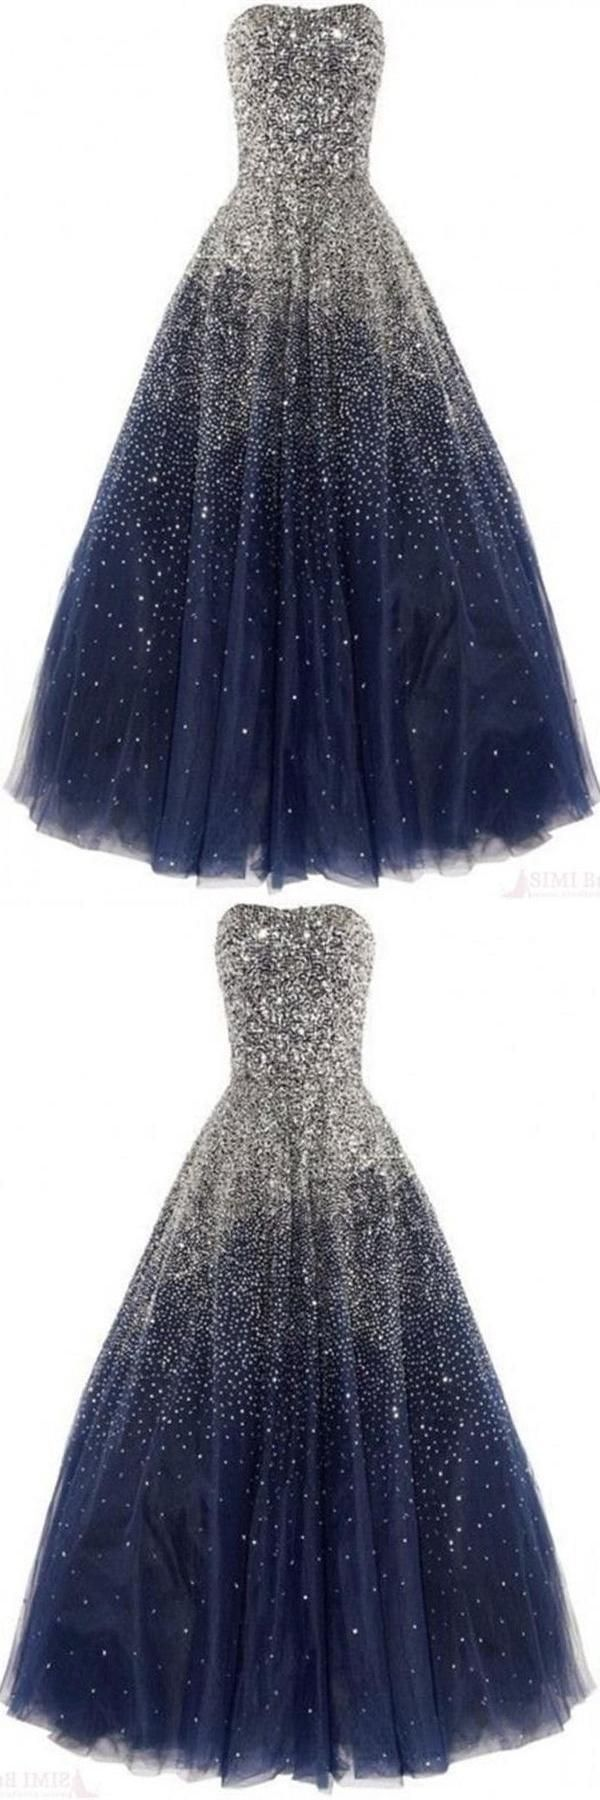 Prom dresses blue prom dresses ball gown sequin prom dresses navy